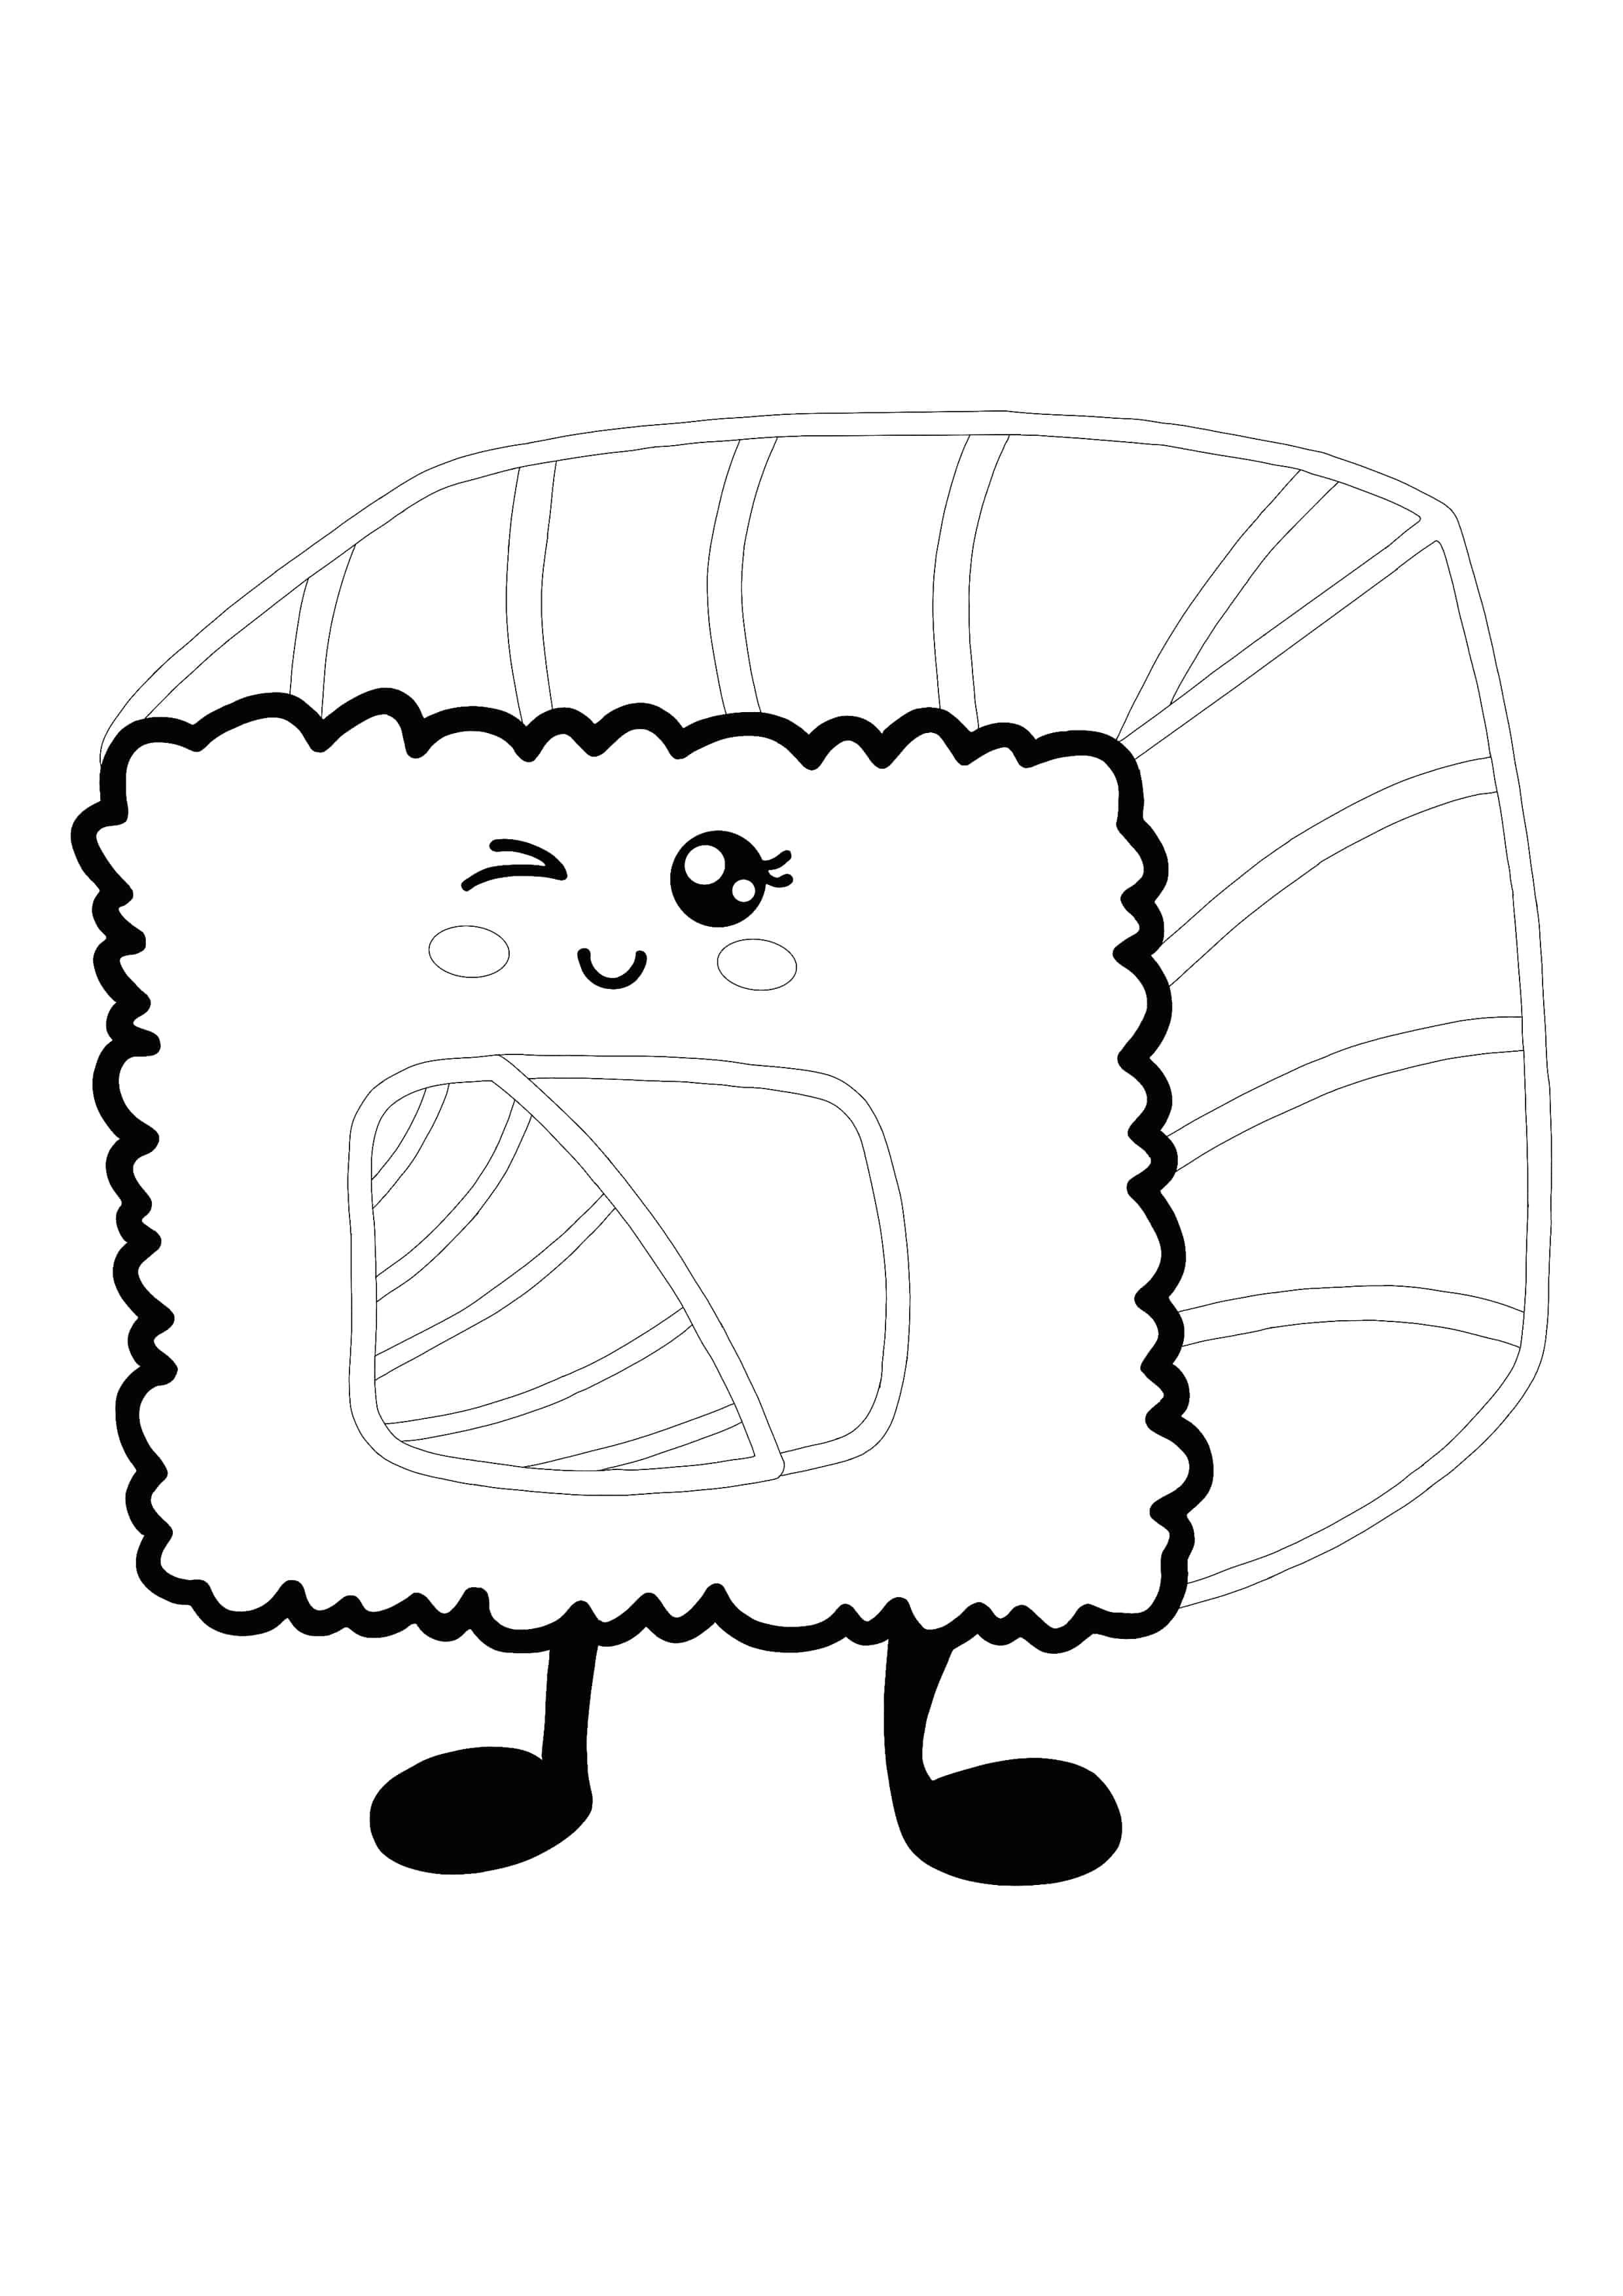 Kawaii Sushi Roll Coloring Page Coloring Pages Free Printable Coloring Pages Free Printable Coloring